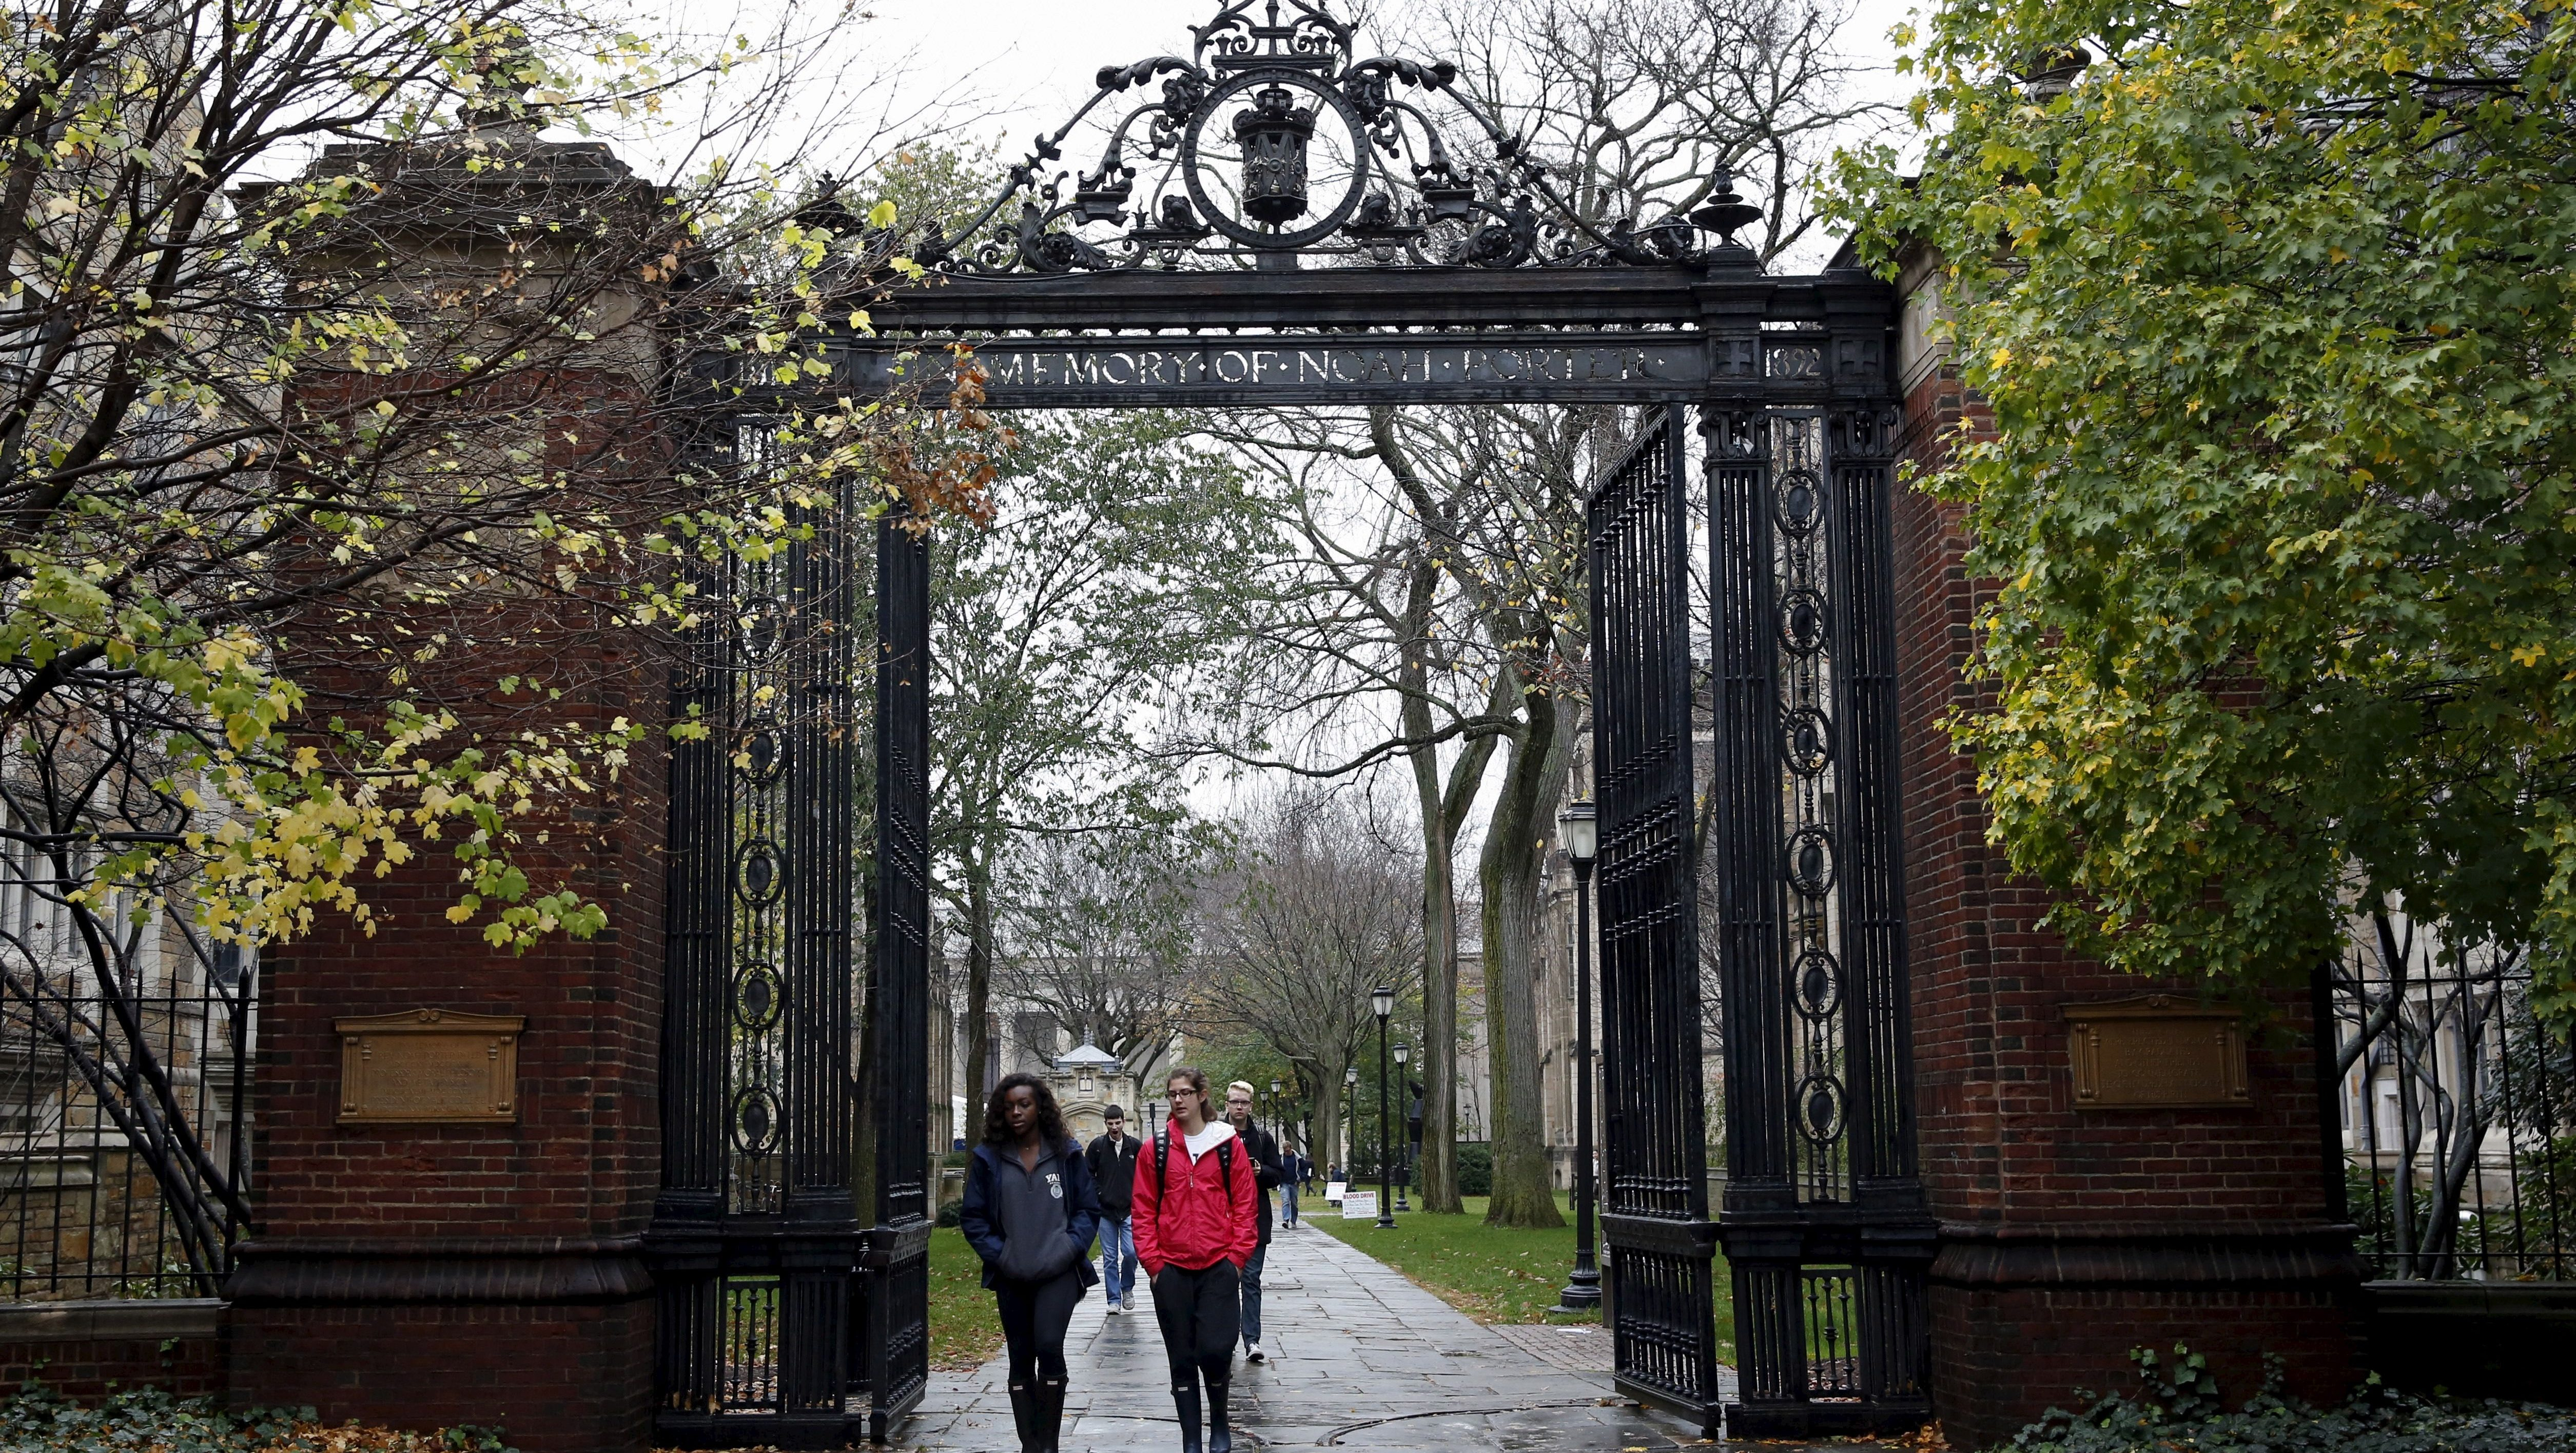 Students walk on the campus of Yale University in New Haven, Connecticut November 12, 2015. More than 1,000 students, professors and staff at Yale University gathered on Wednesday to discuss race and diversity at the elite Ivy League school, amid a wave of demonstrations at U.S. colleges over the treatment of minority students. REUTERS/Shannon Stapleton - GF20000056999